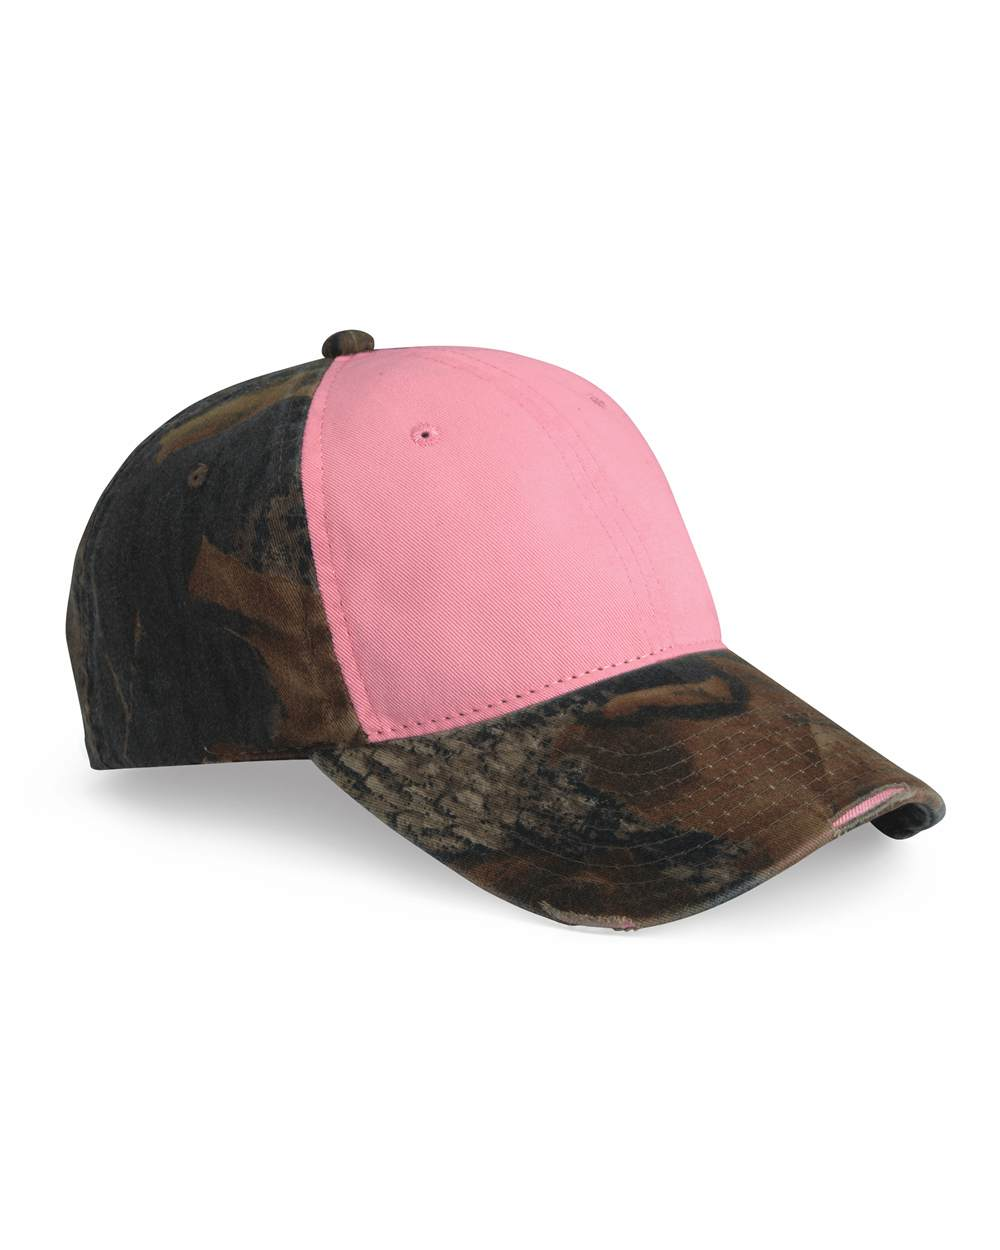 Outdoor Cap CGWT611 Frayed Ladies' Camouflage Cap